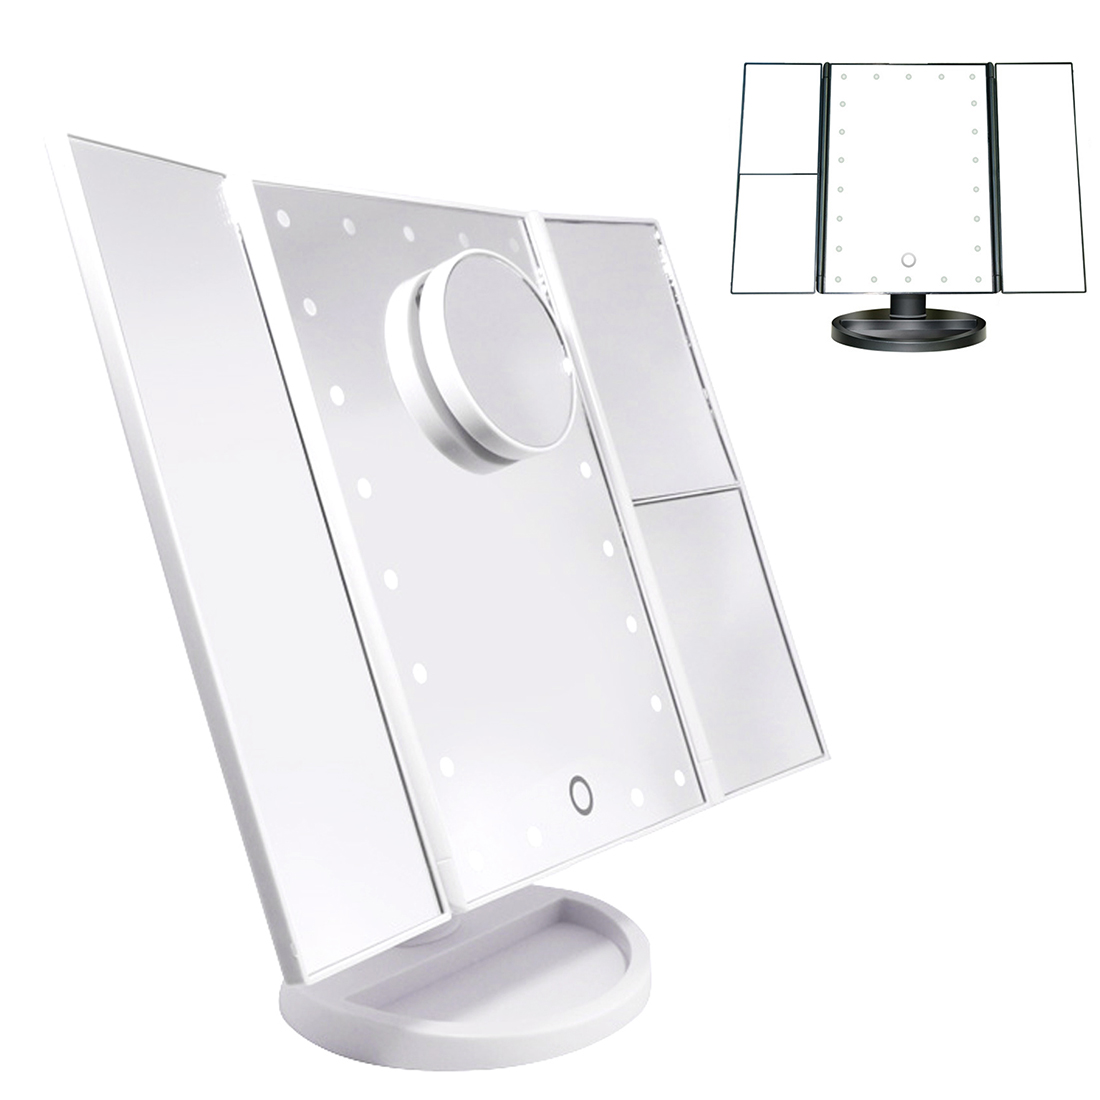 Table Desktop Makeup 1X 2X 3X 10X Magnifying Mirrors Folding Adjustable Mirror LED Touch Screen 22